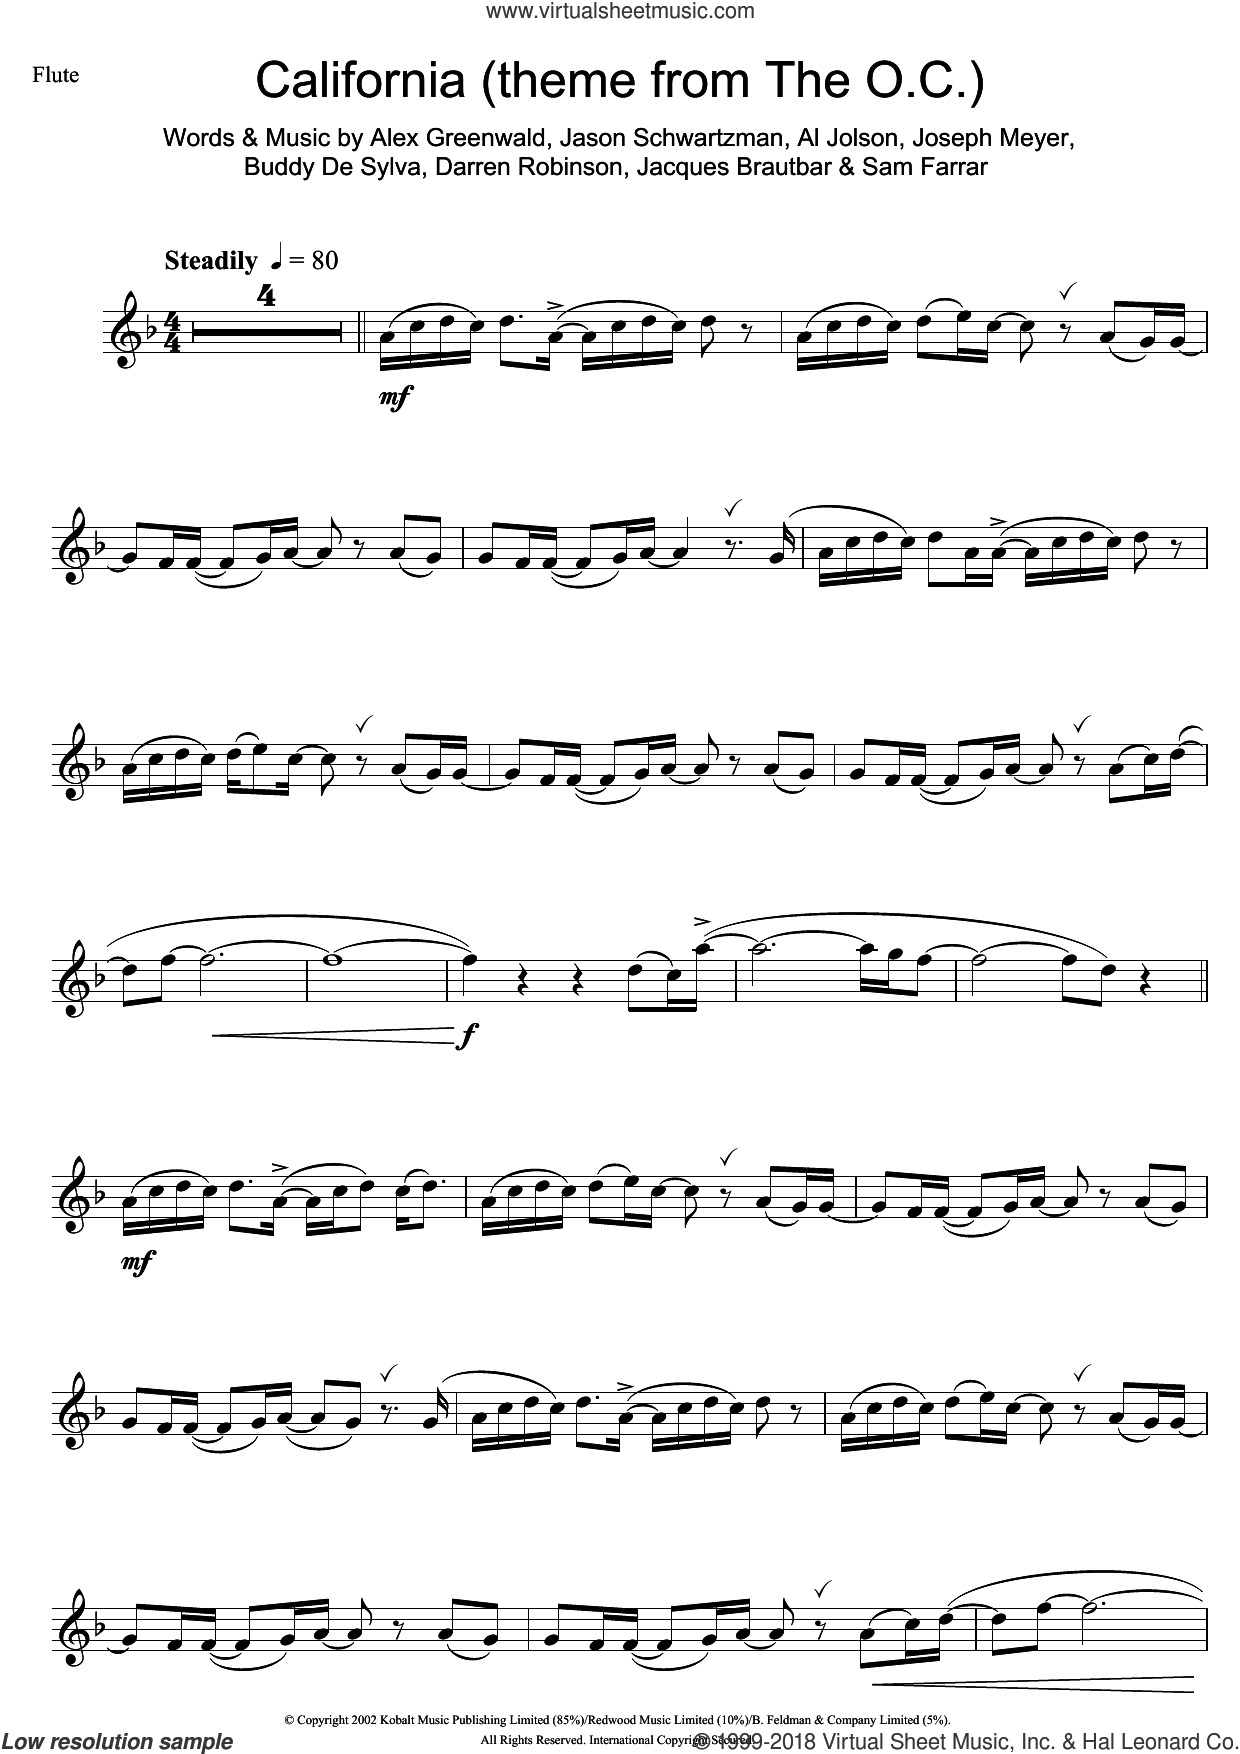 California (theme from The OC) sheet music for flute solo by Phantom Planet, Al Jolson, Alex Greenwald, Buddy DeSylva, Darren Robinson, Jacques Brautbar, Jason Schwartzman, Joseph Meyer and Sam Farrar, intermediate skill level